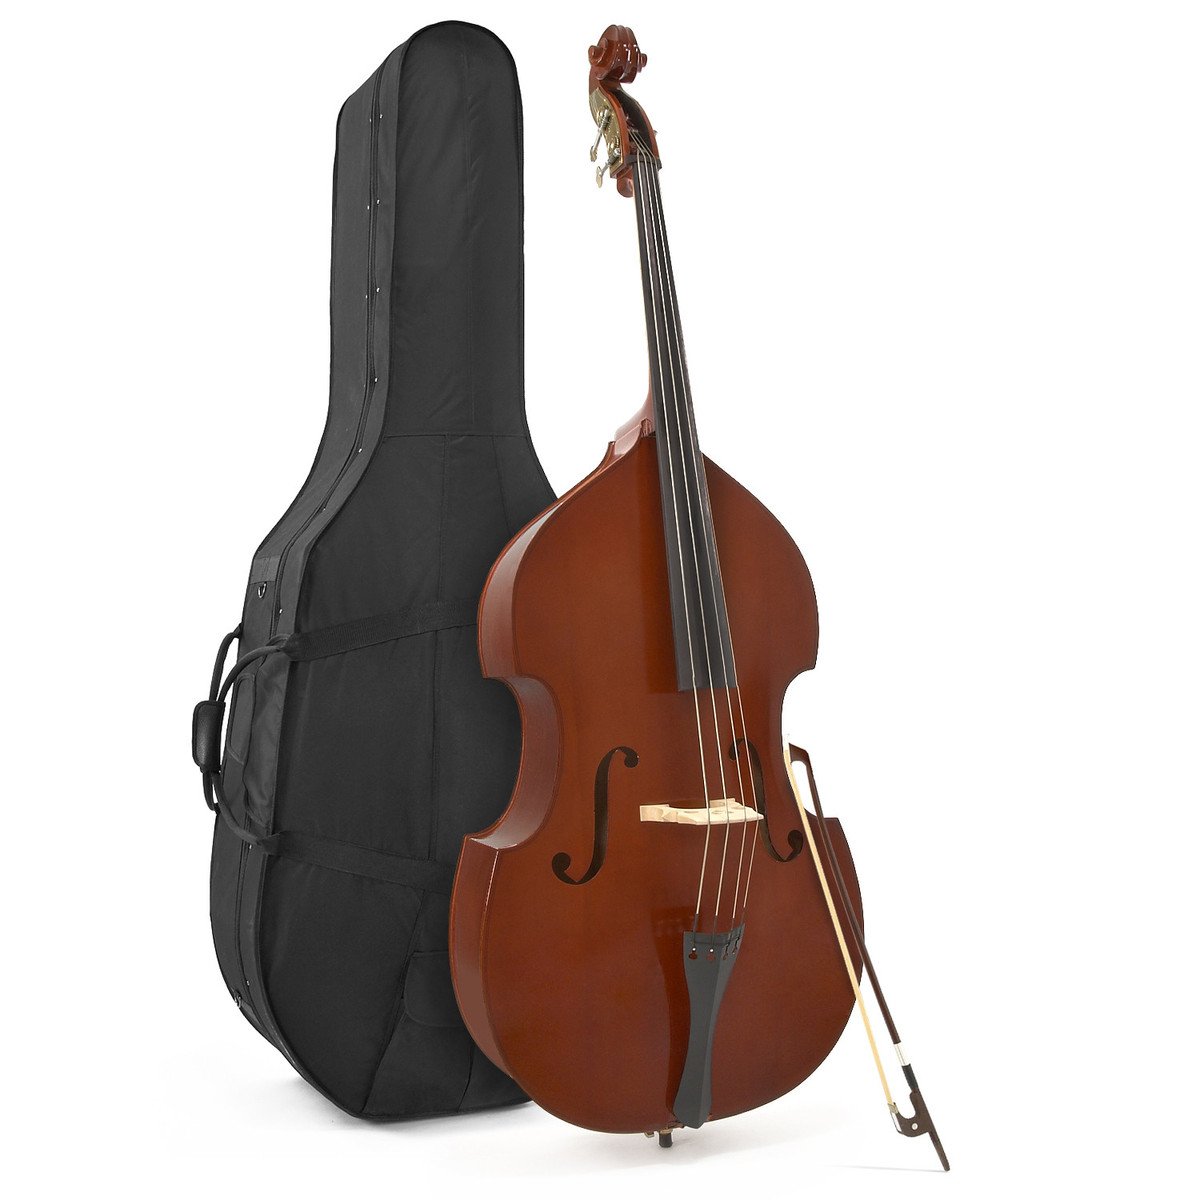 Image of Deluxe 3/4 Solid Top Double Bass + Case by Gear4music